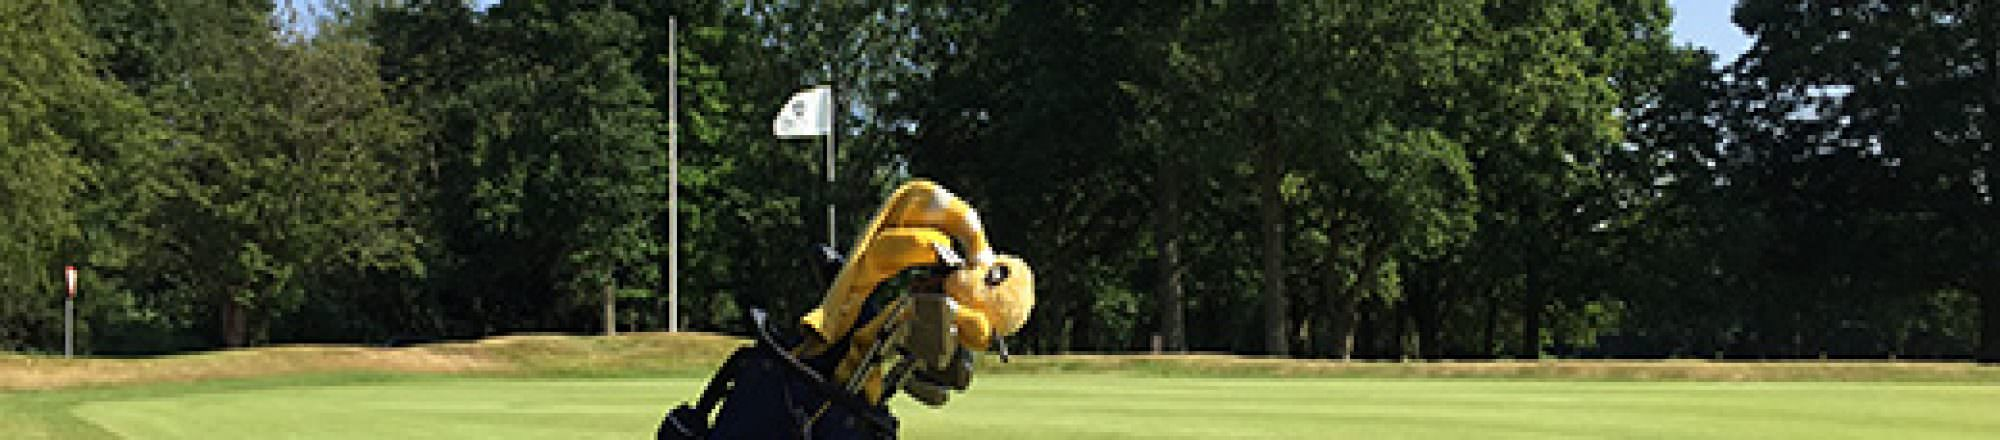 Played by NCG: Berkhamsted